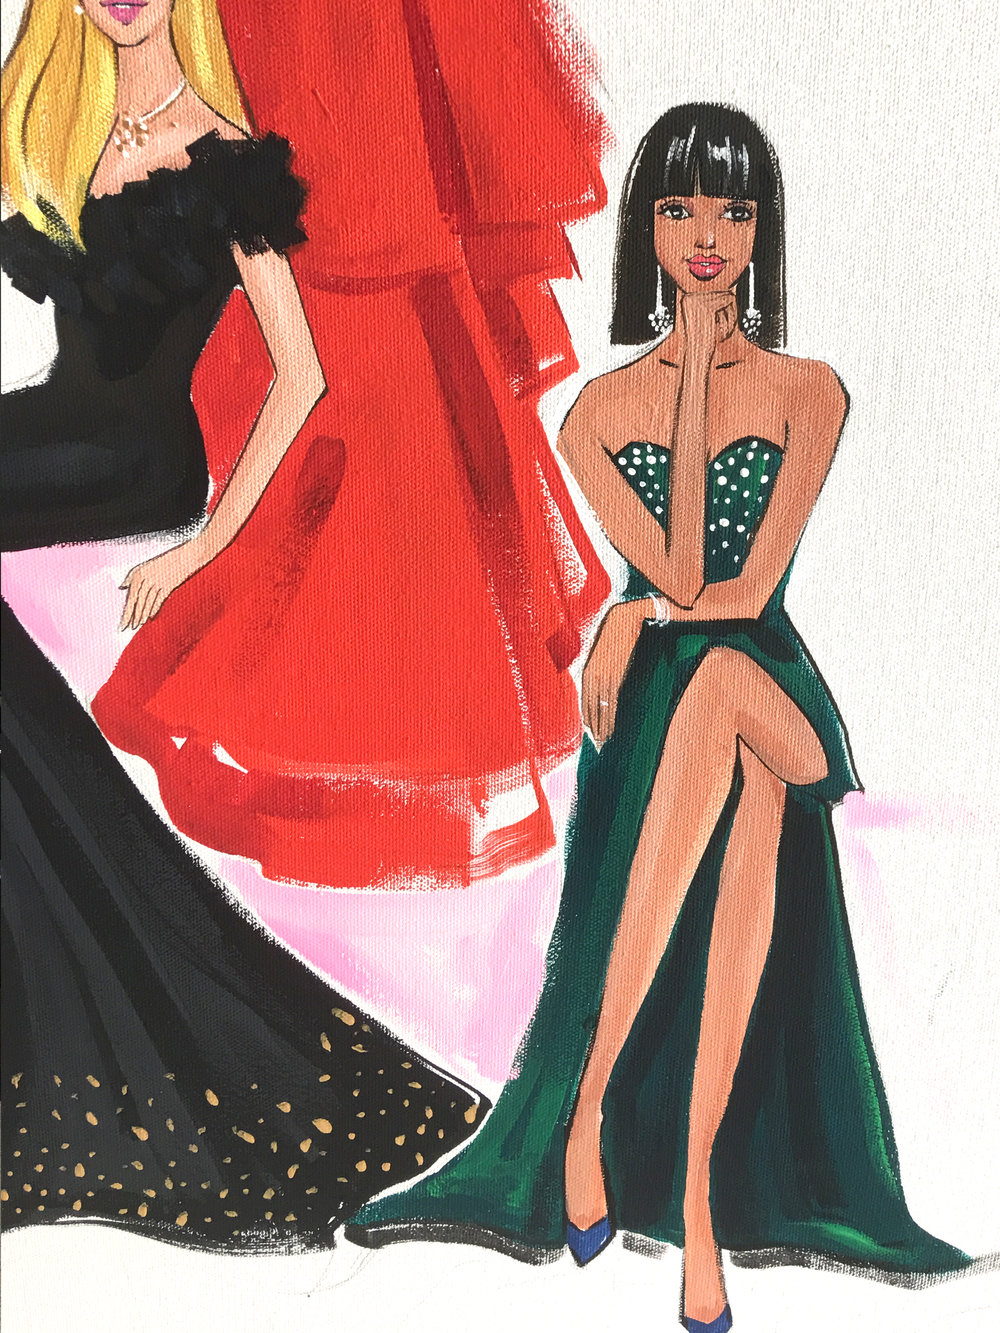 Close up Fashion painting for River Oaks District by freelance fashion illustrator Rongrong DeVoe